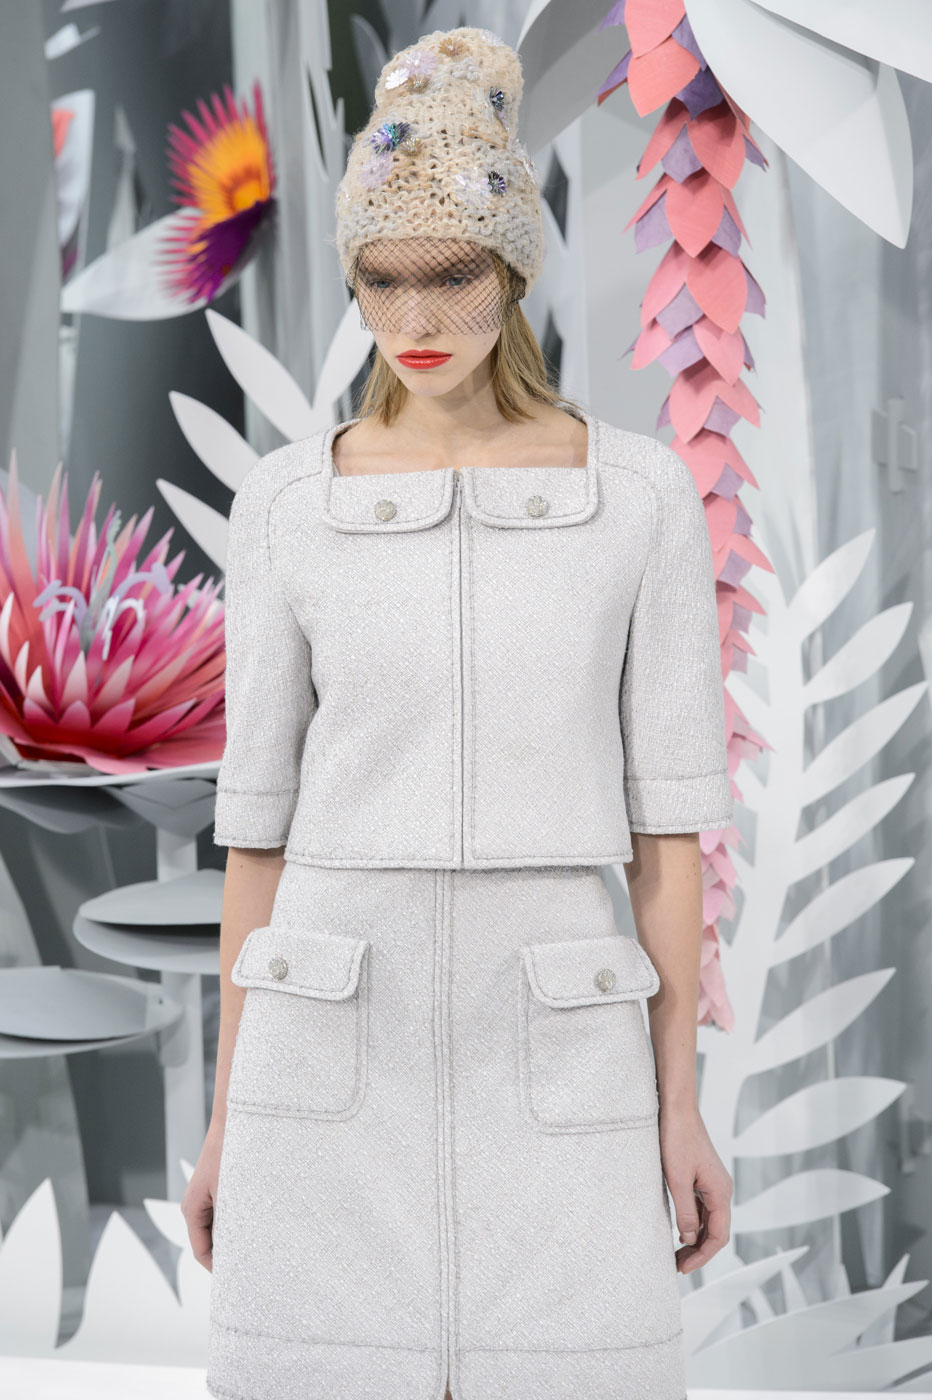 Chanel-fashion-runway-show-haute-couture-paris-spring-summer-2015-the-impression-022